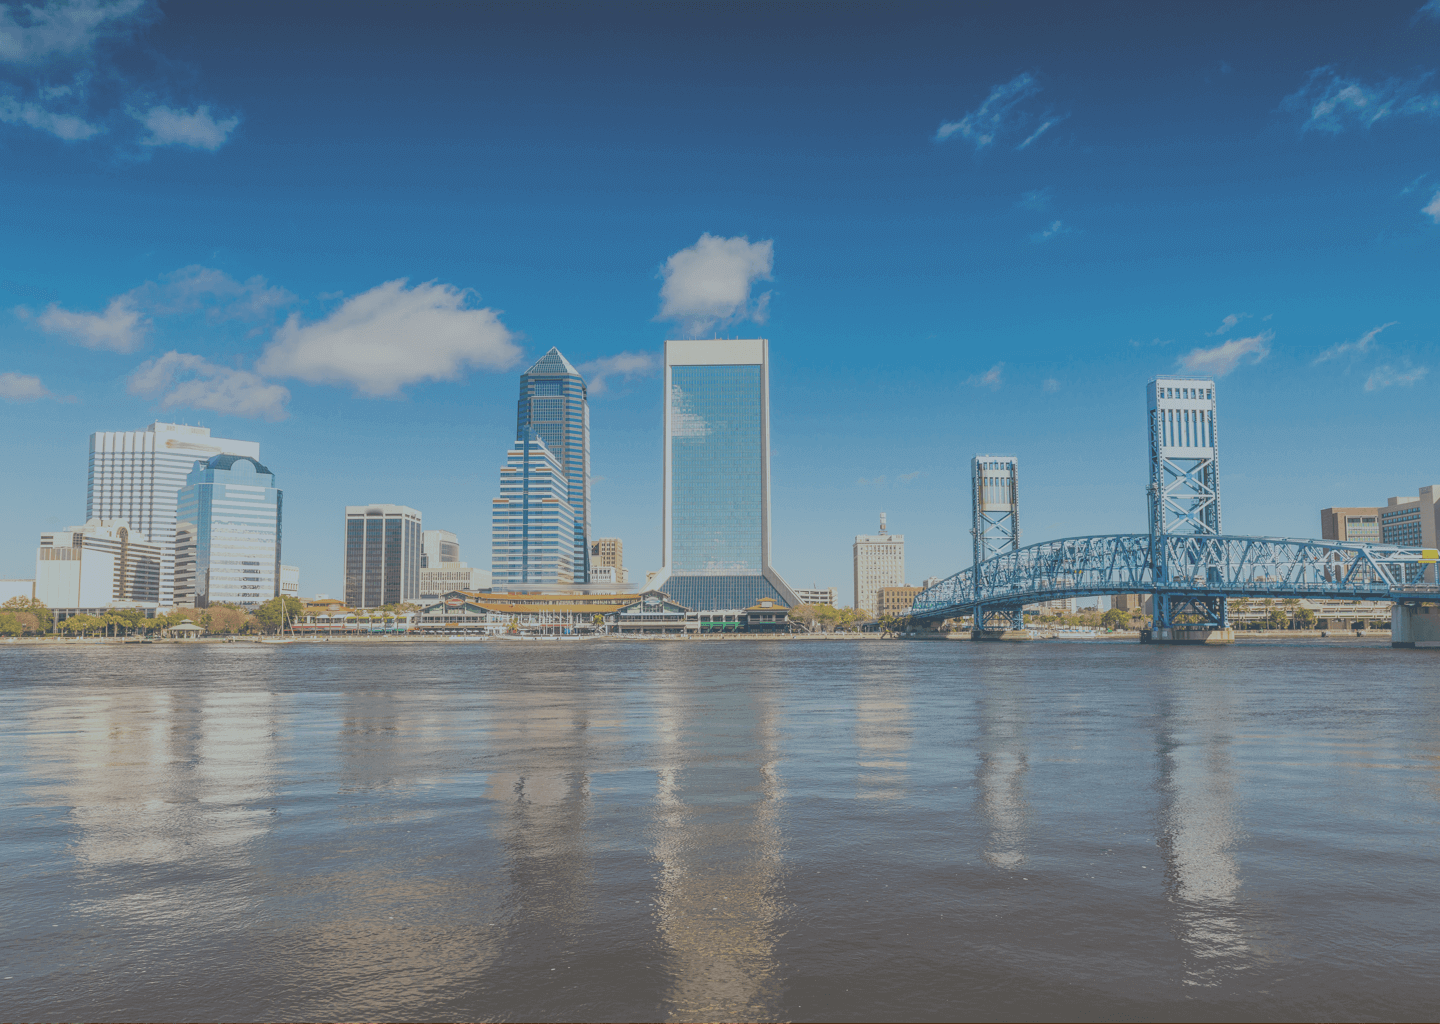 A coastline view of Jacksonville